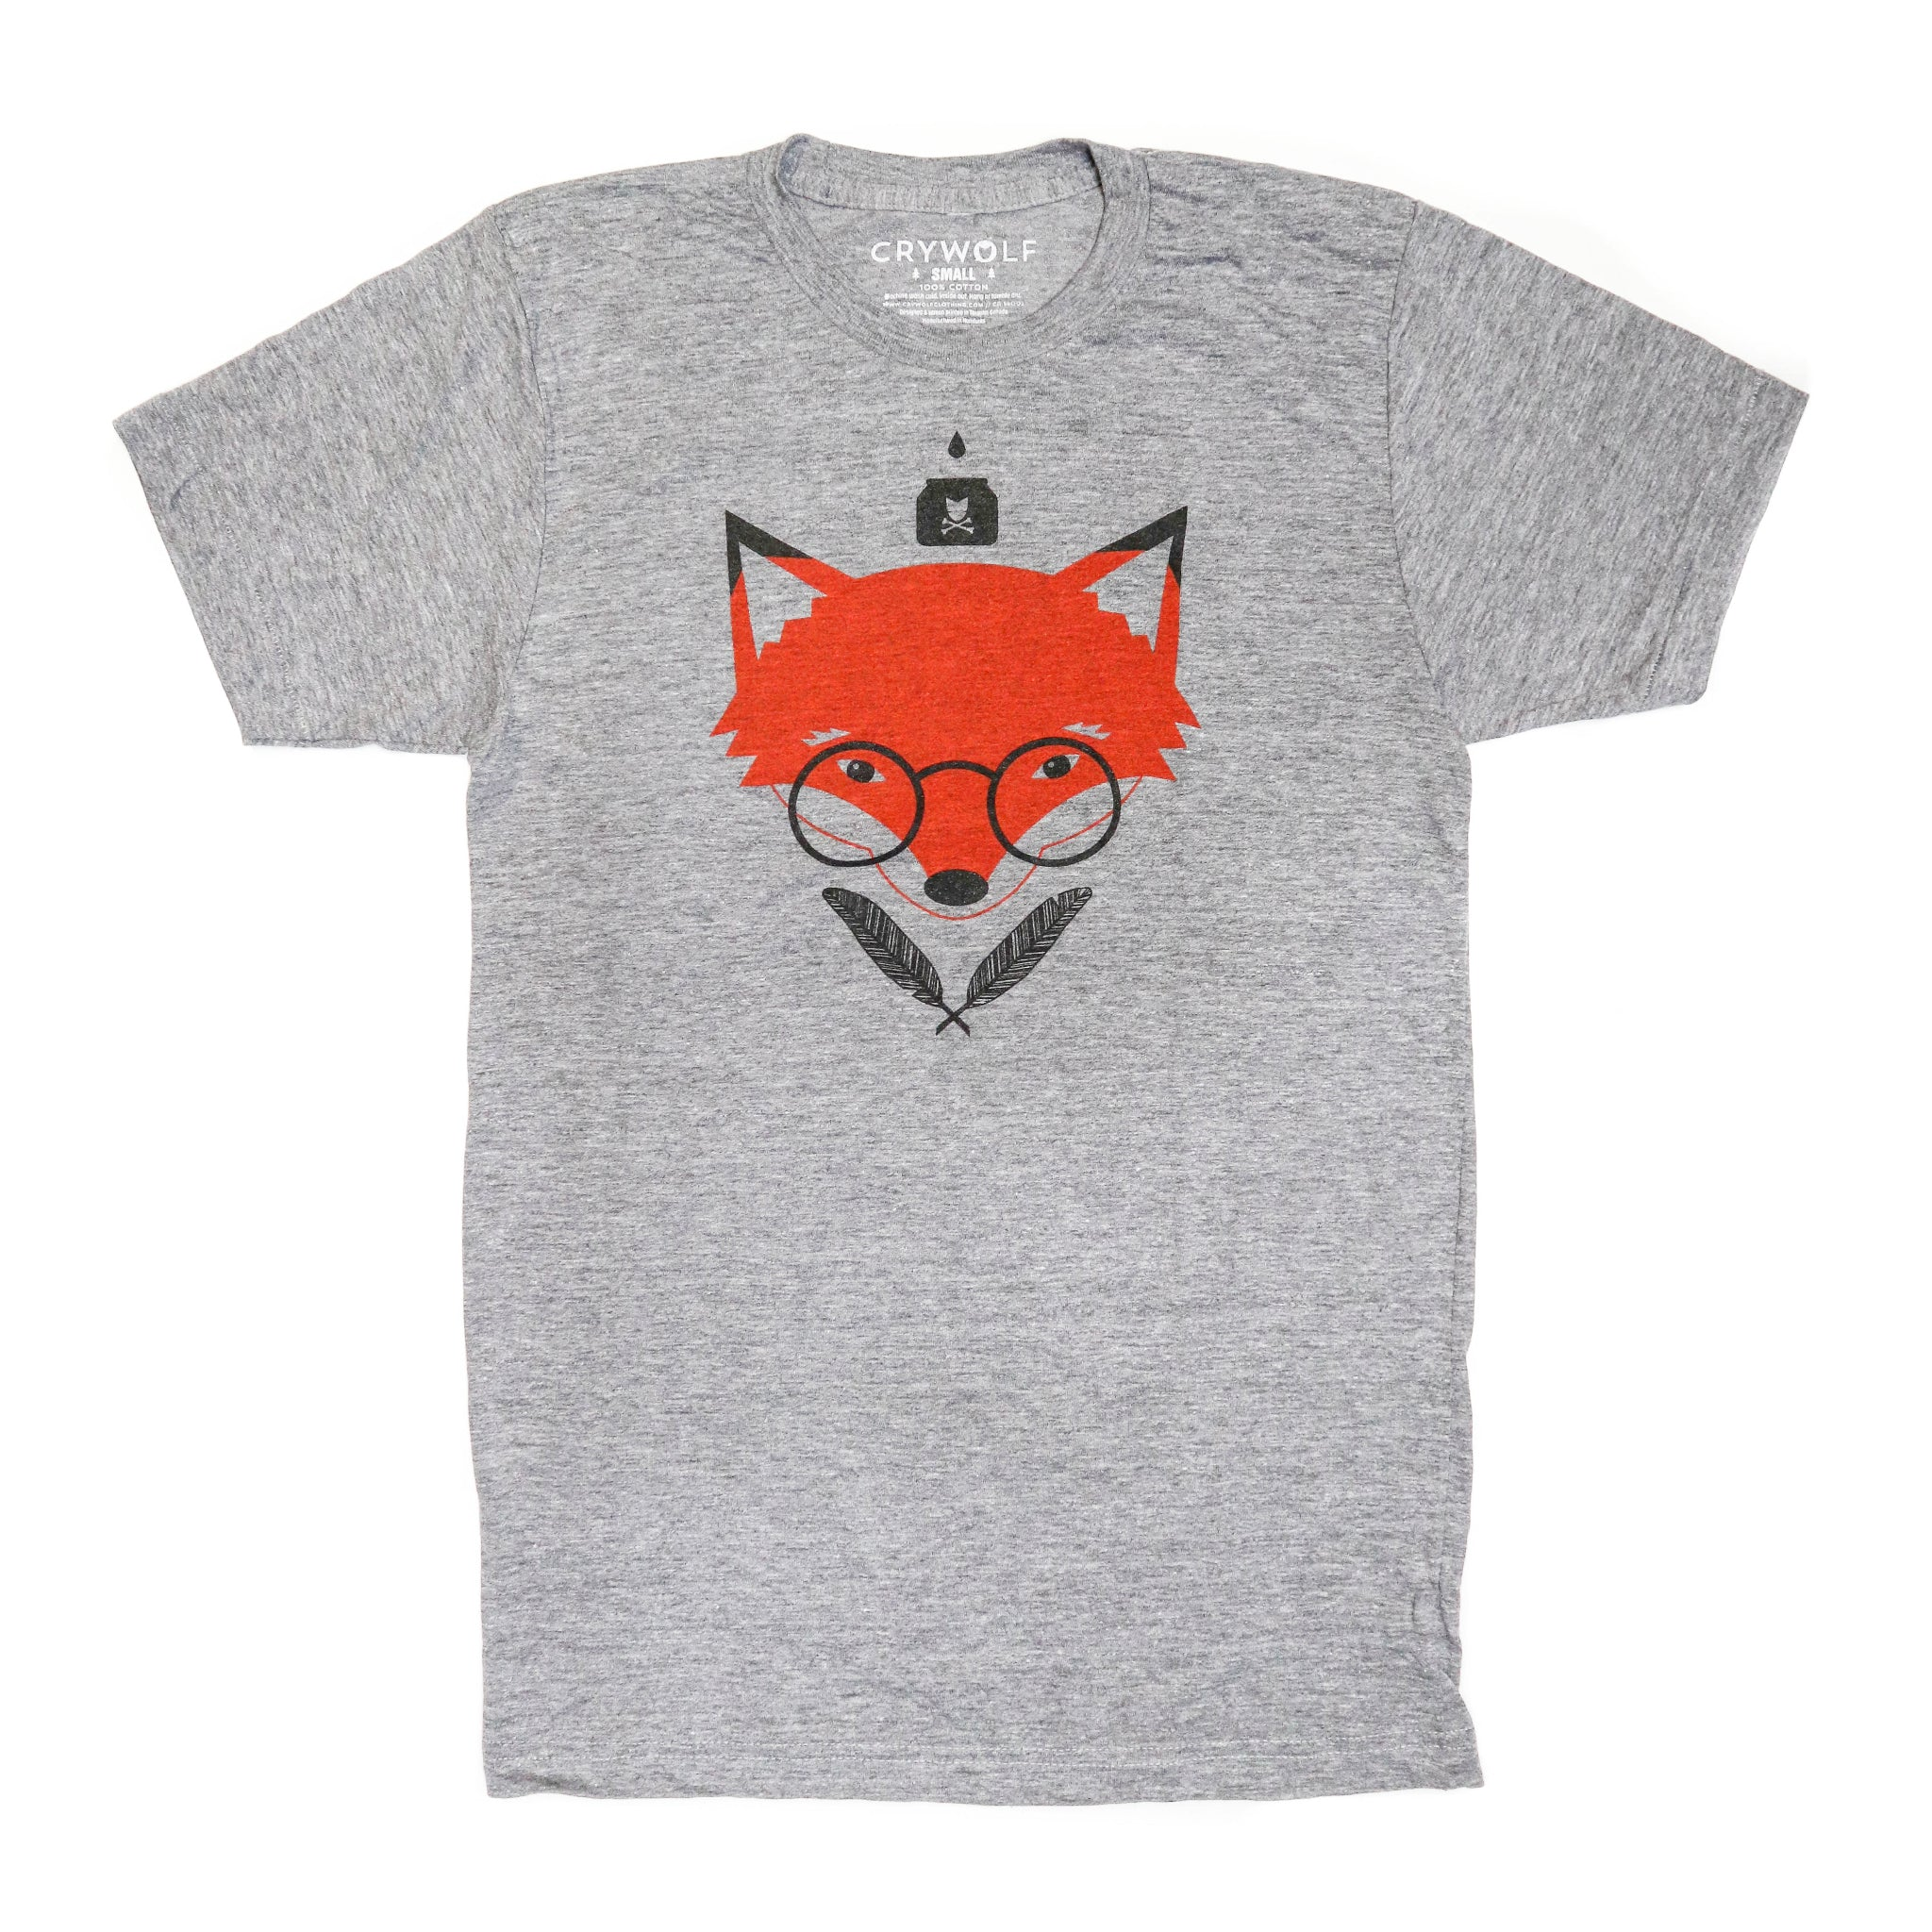 Mr. Fox Tshirt